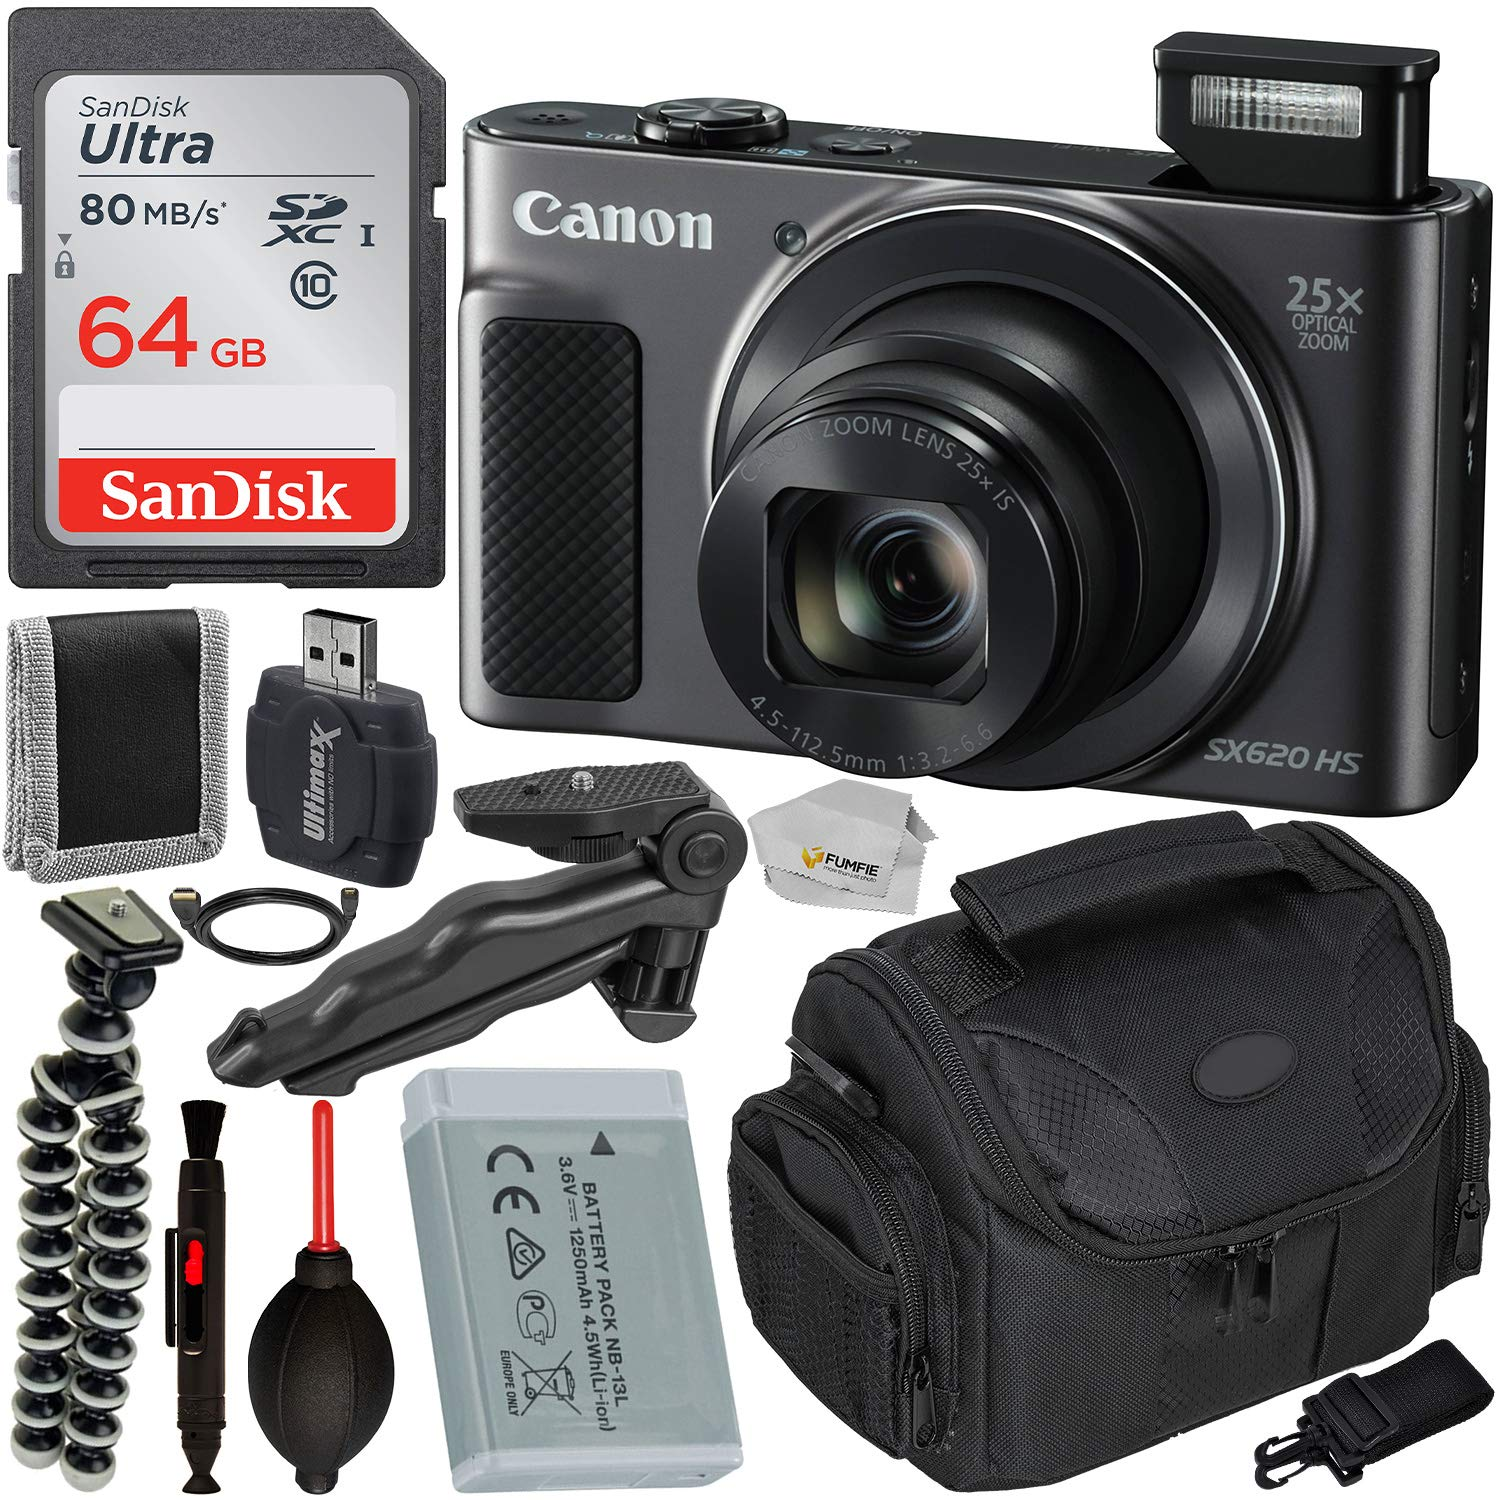 Canon PowerShot SX620 HS Digital Camera (Black) with Essential Accessory Bundle - Includes: SanDisk Ultra 64GB SDXC Memory Card, Pistol Grip, Carrying Case & Much More by Canon